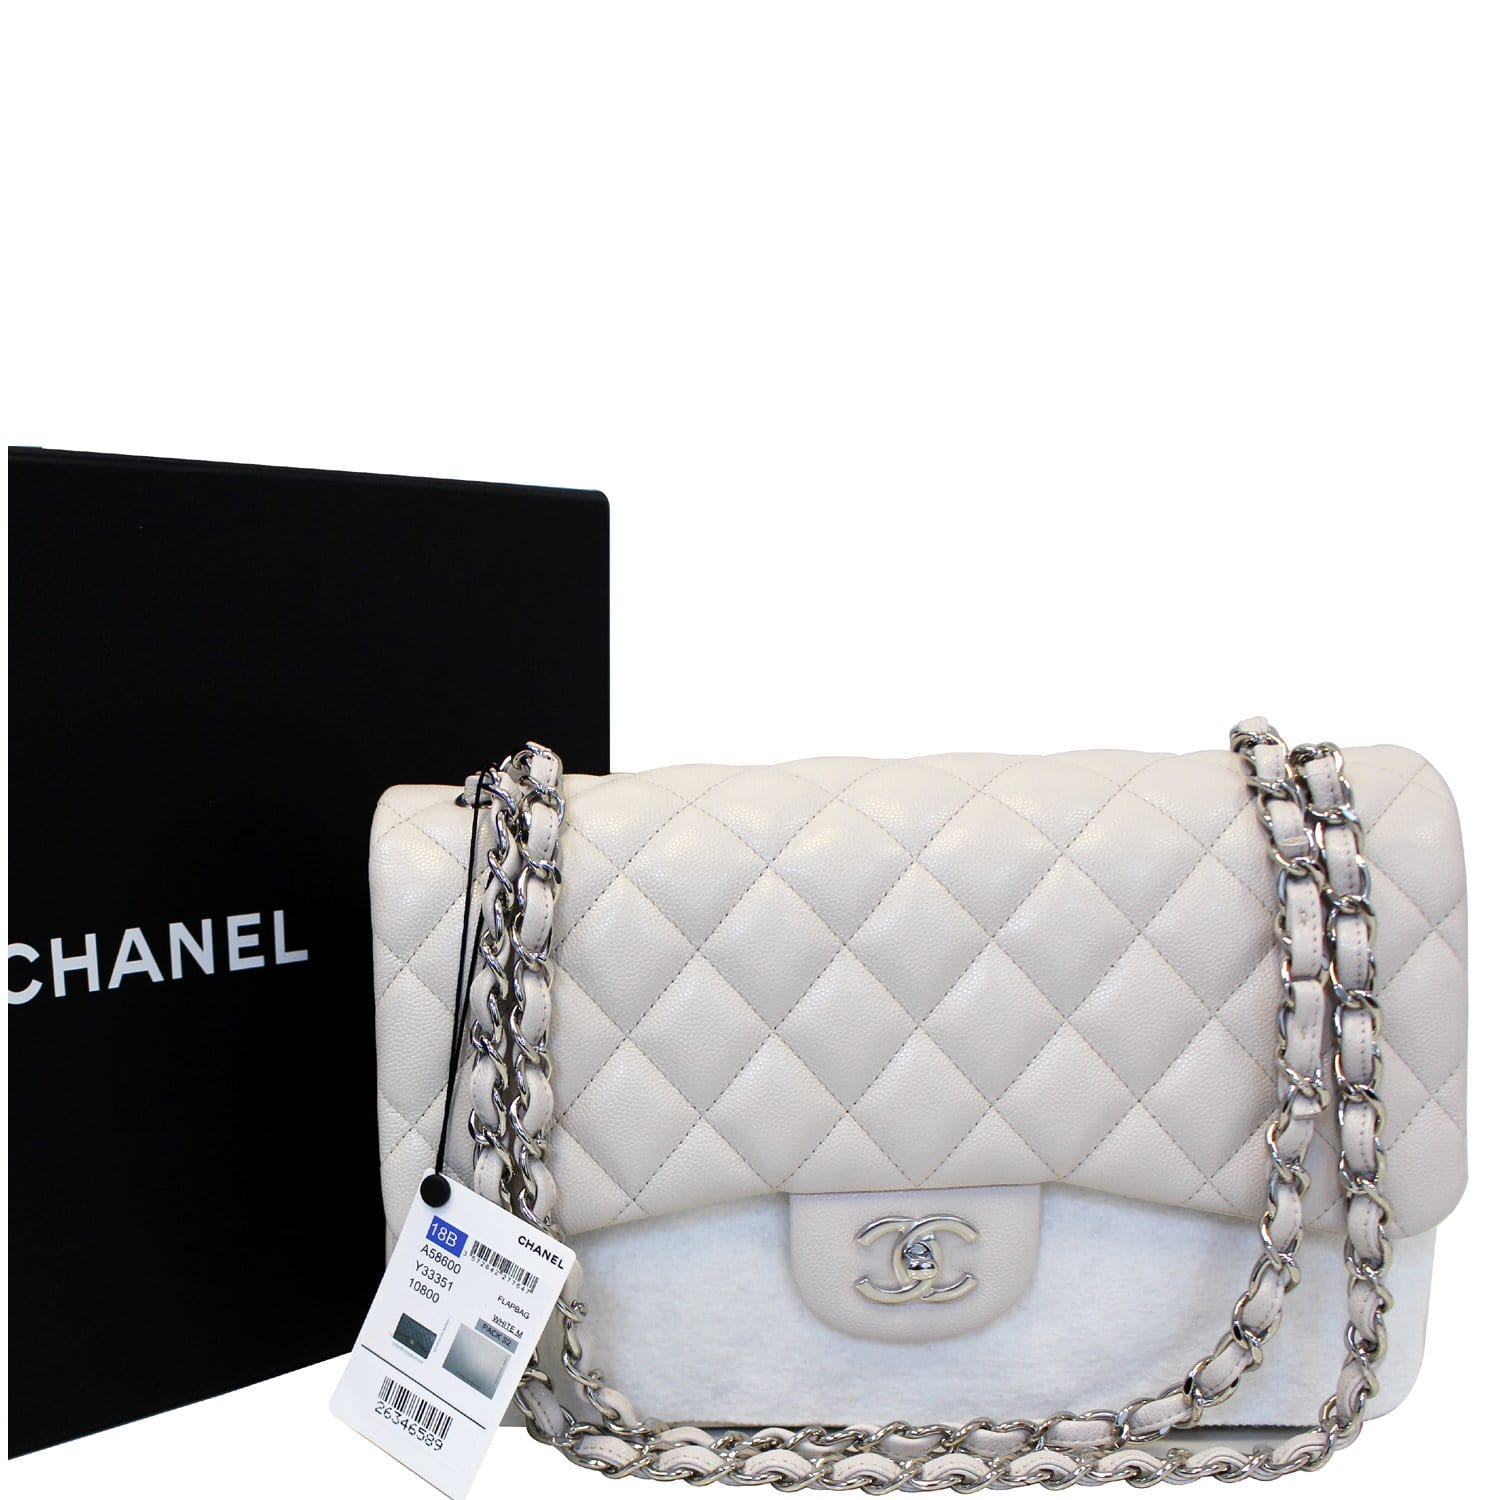 8eac4a9ee640 CHANEL Classic Jumbo Double Flap Caviar Leather White Shoulder Bag-US